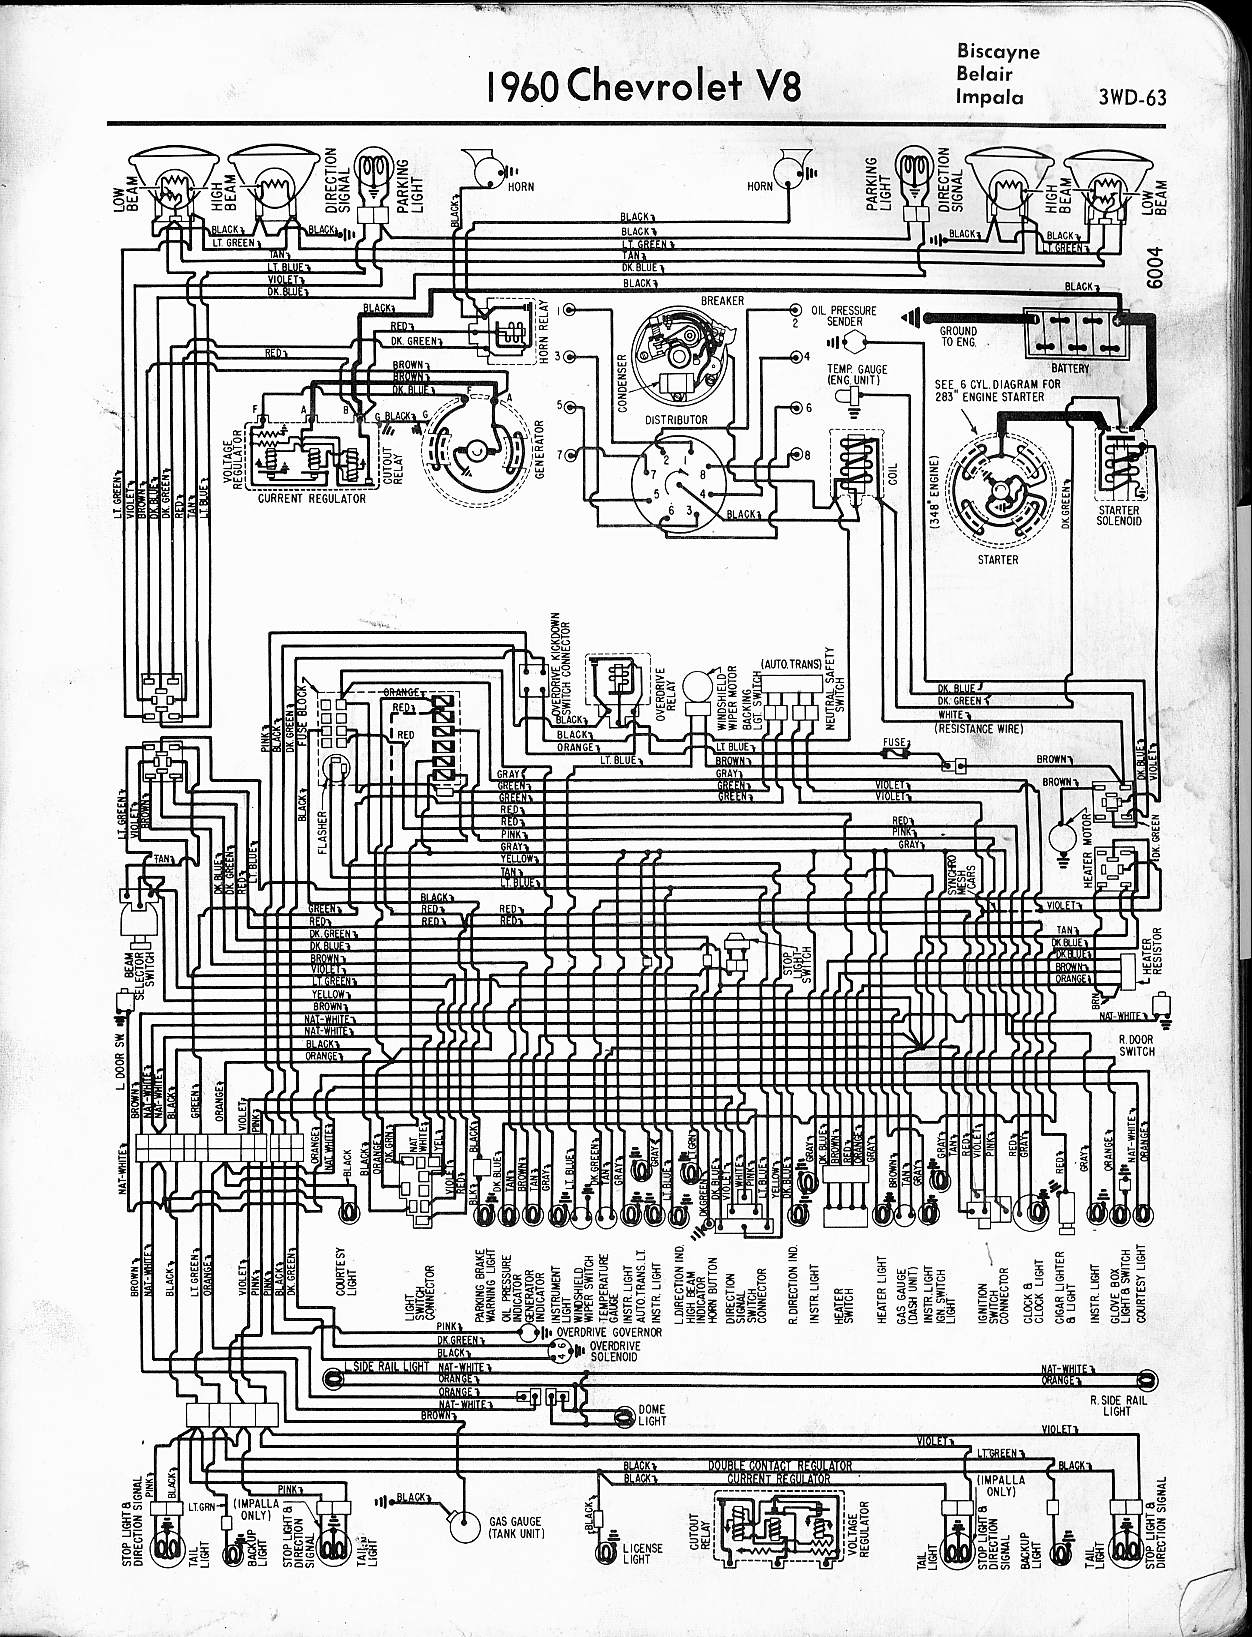 57 65 chevy wiring diagrams rh oldcarmanualproject com Automotive Wiring System Diagram Simple Automotive Wiring Diagram